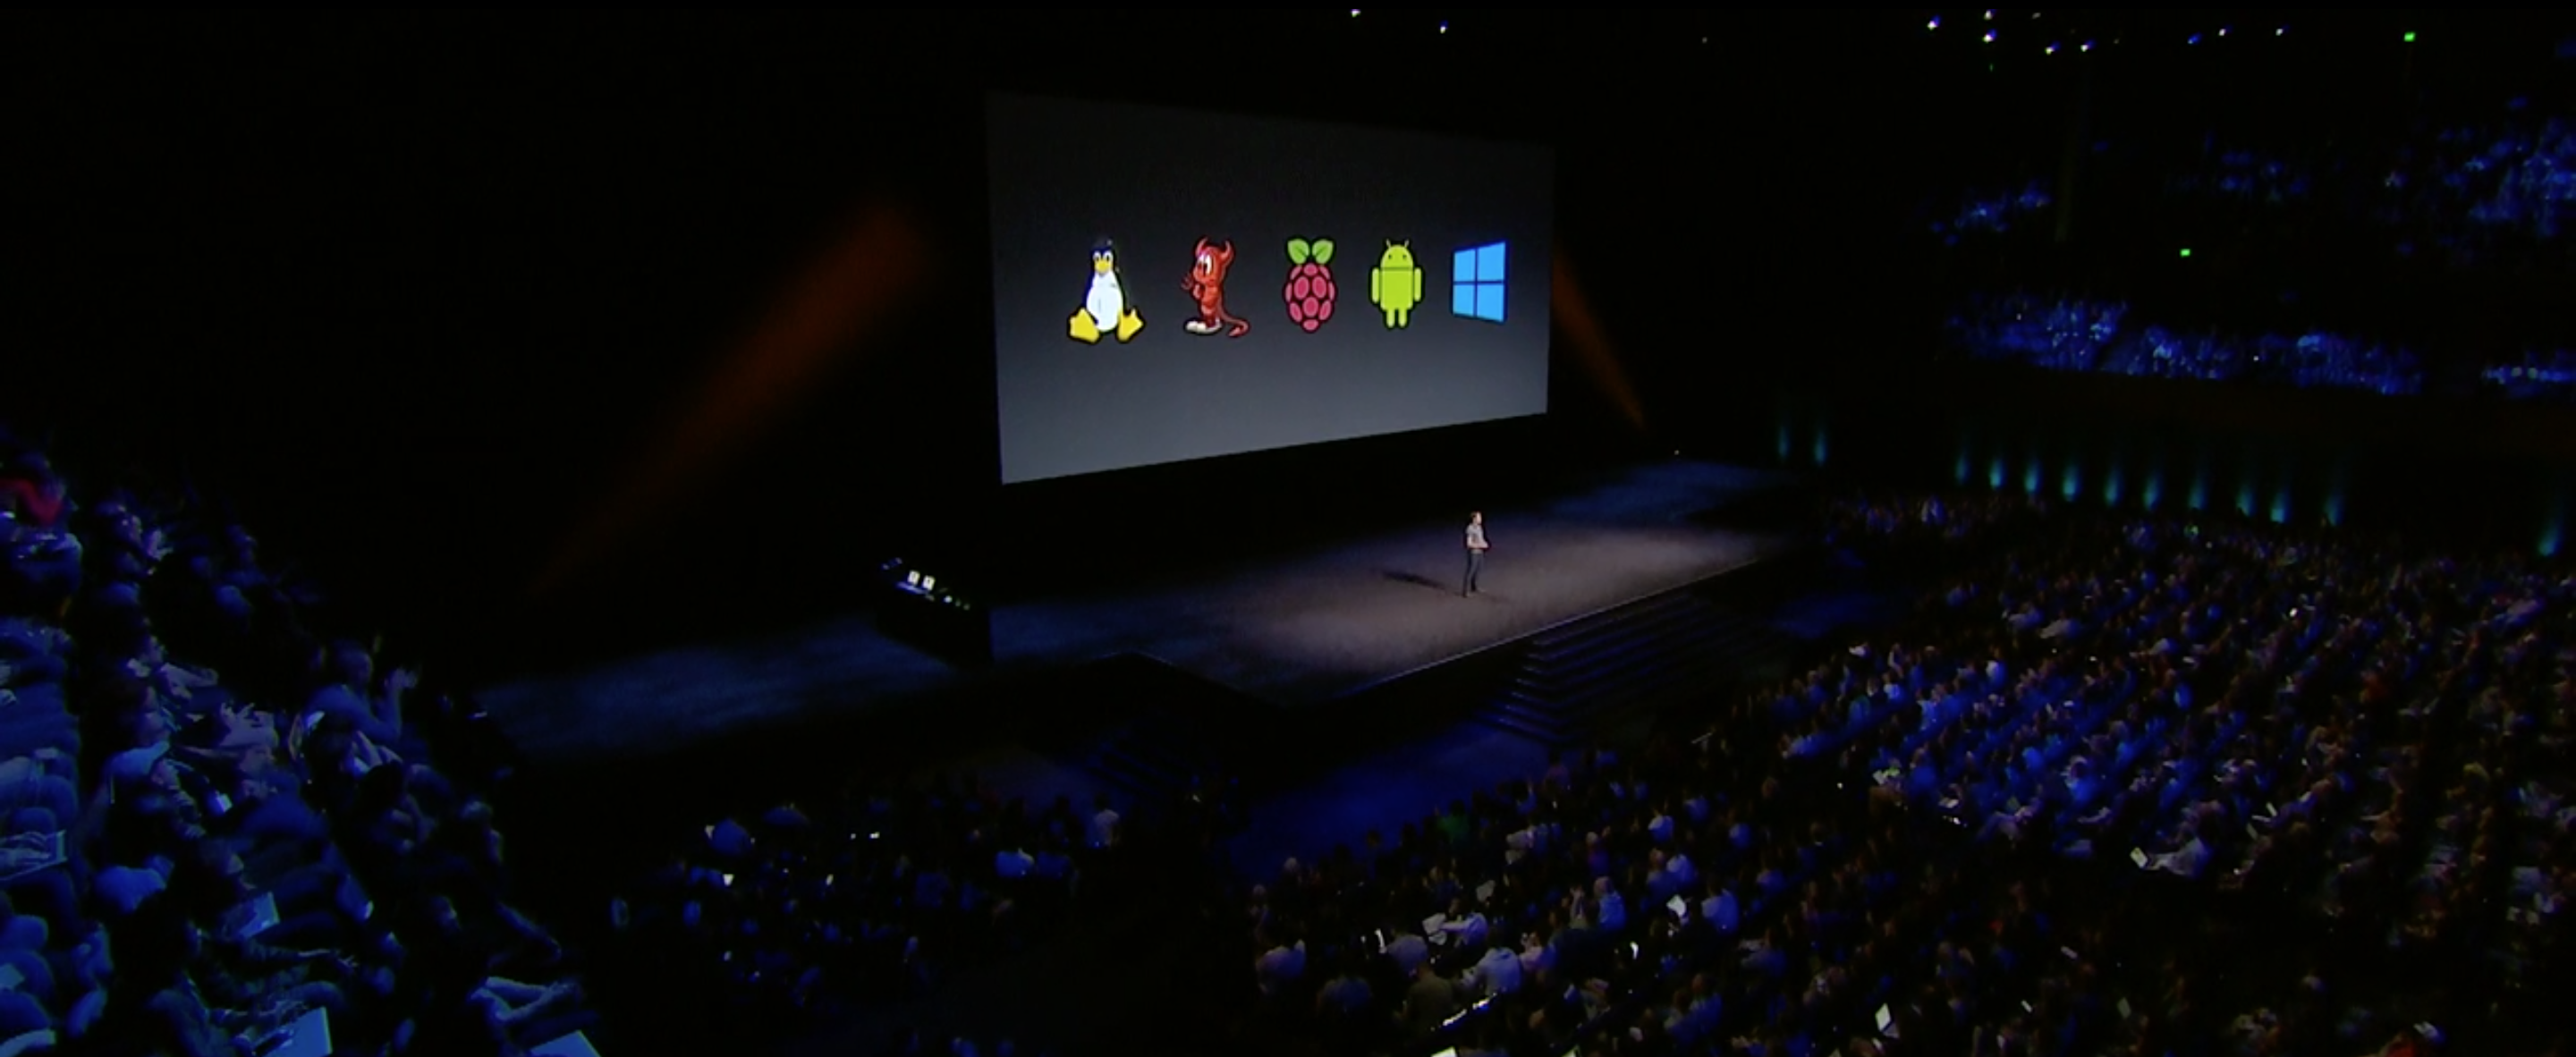 In June 2016 something I worked on was featured in Apple's WWDC State of the Union.